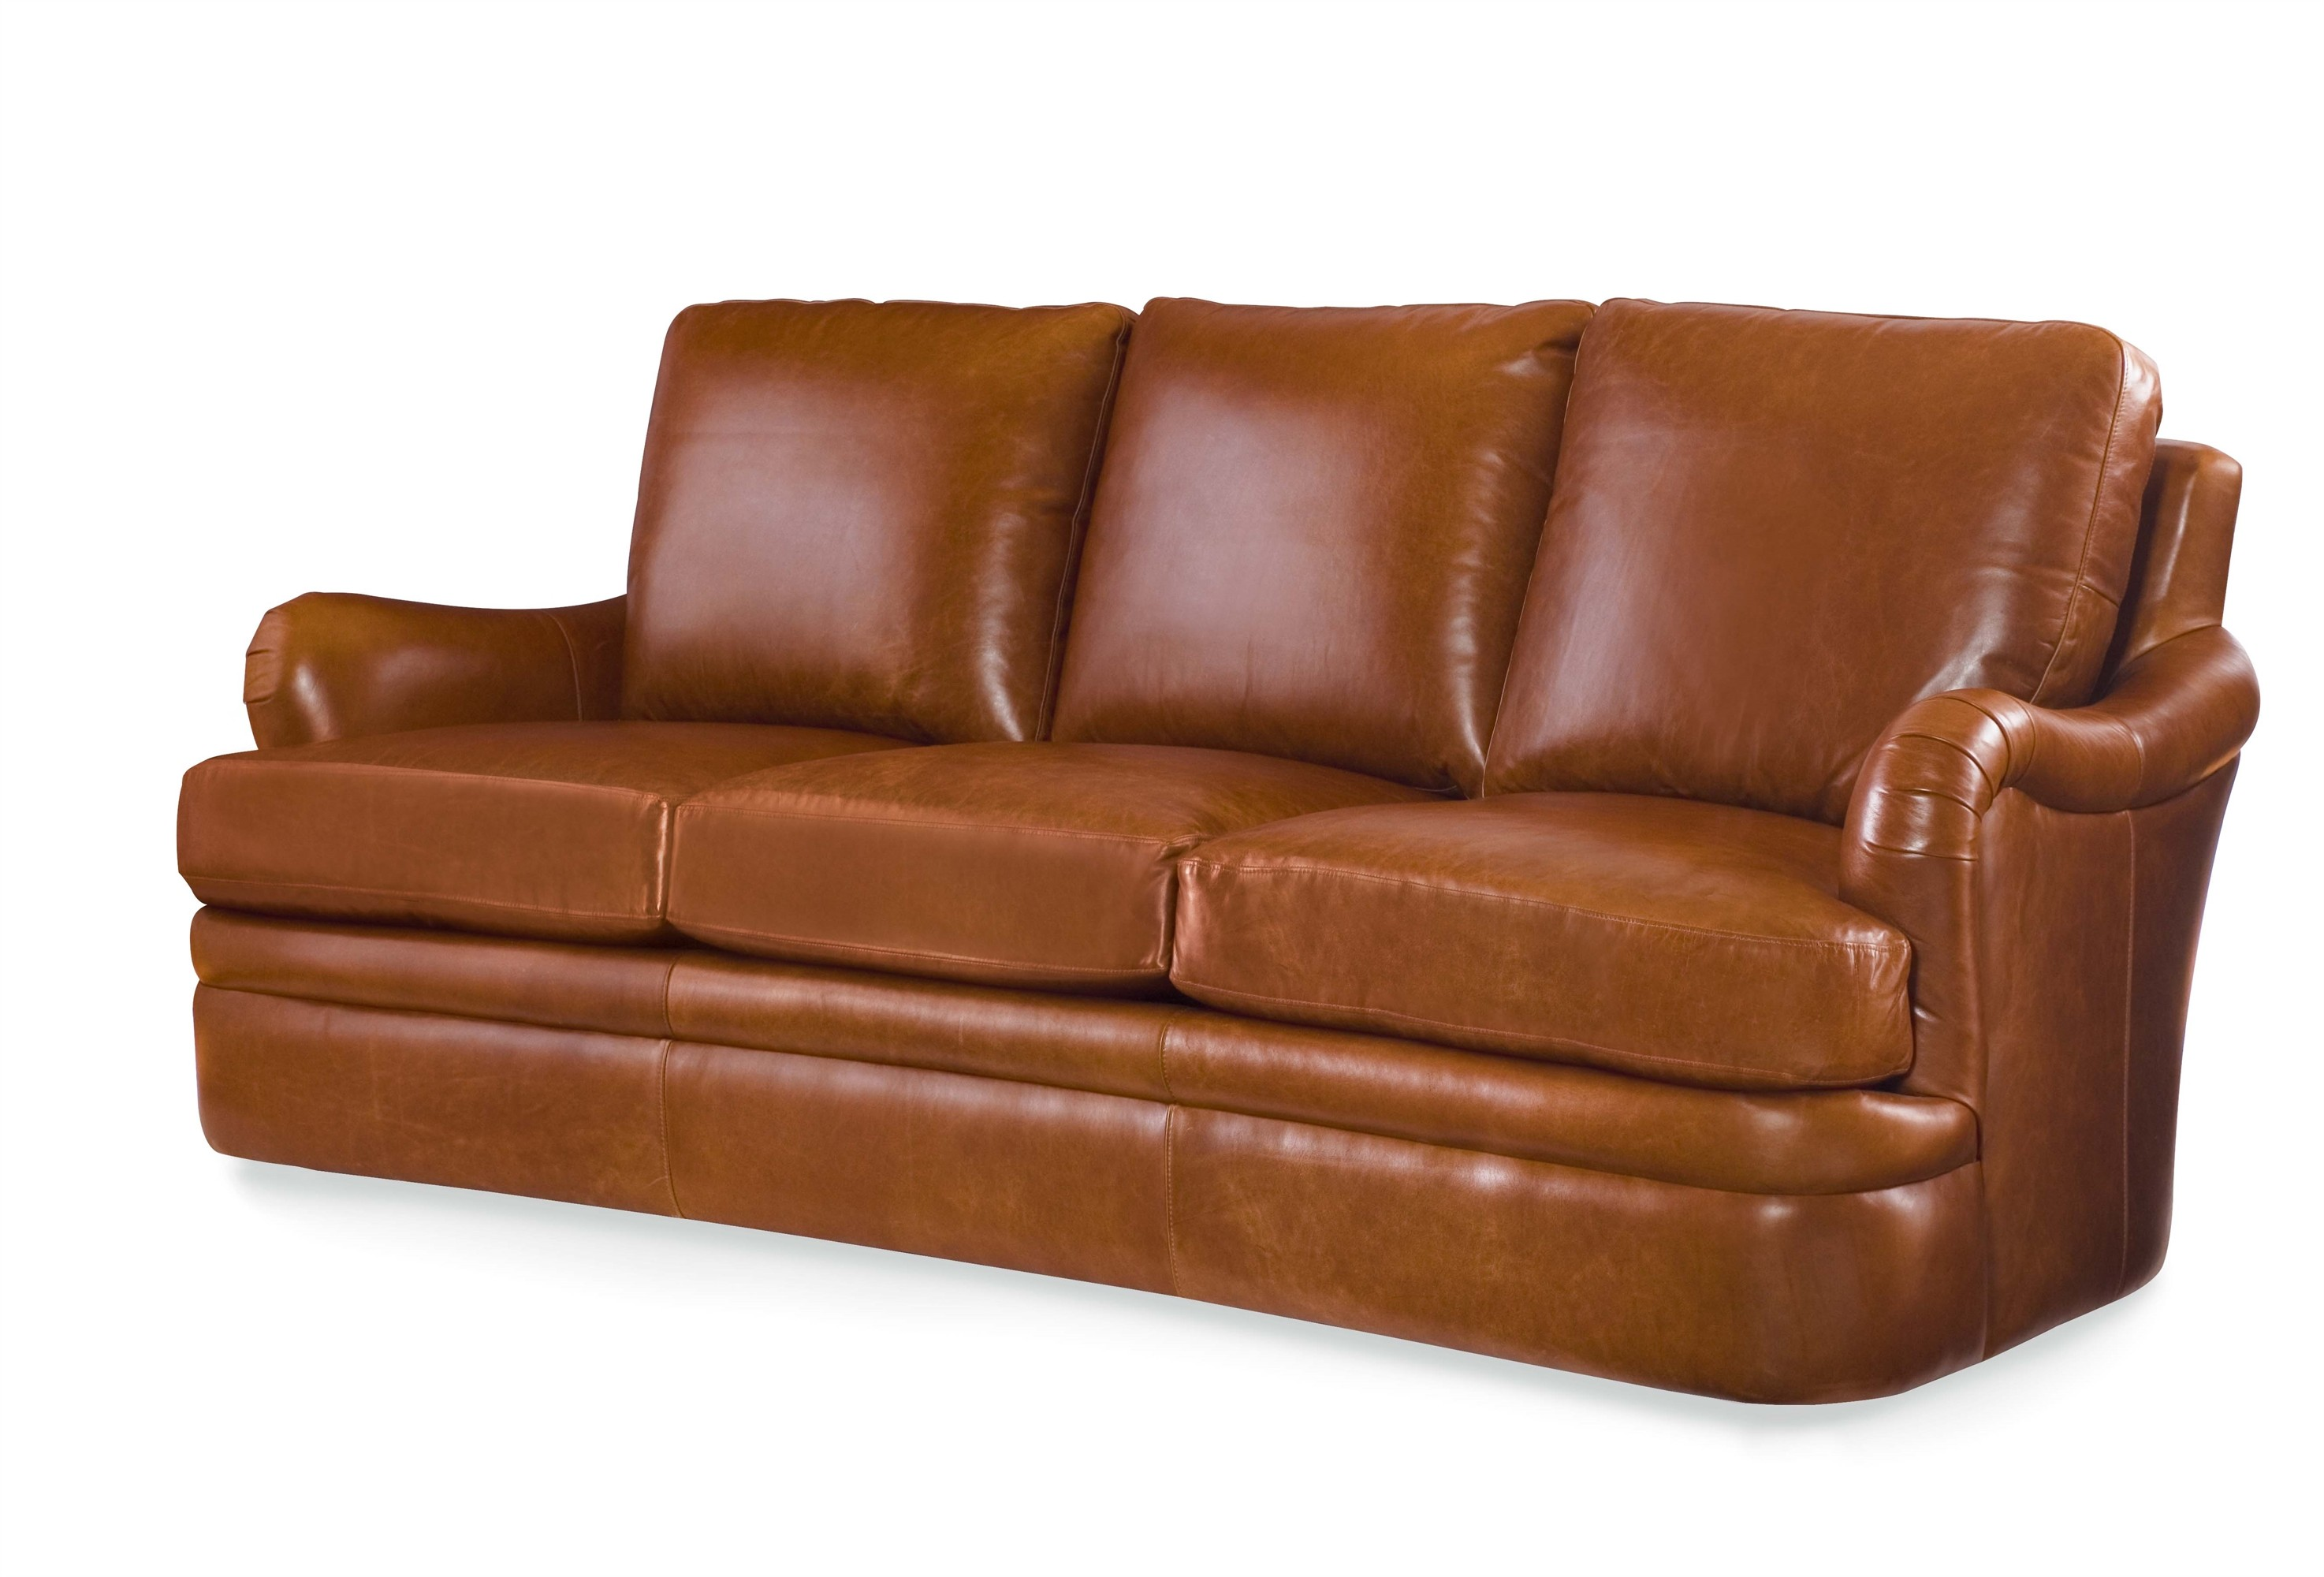 Whitby Leather Sofa